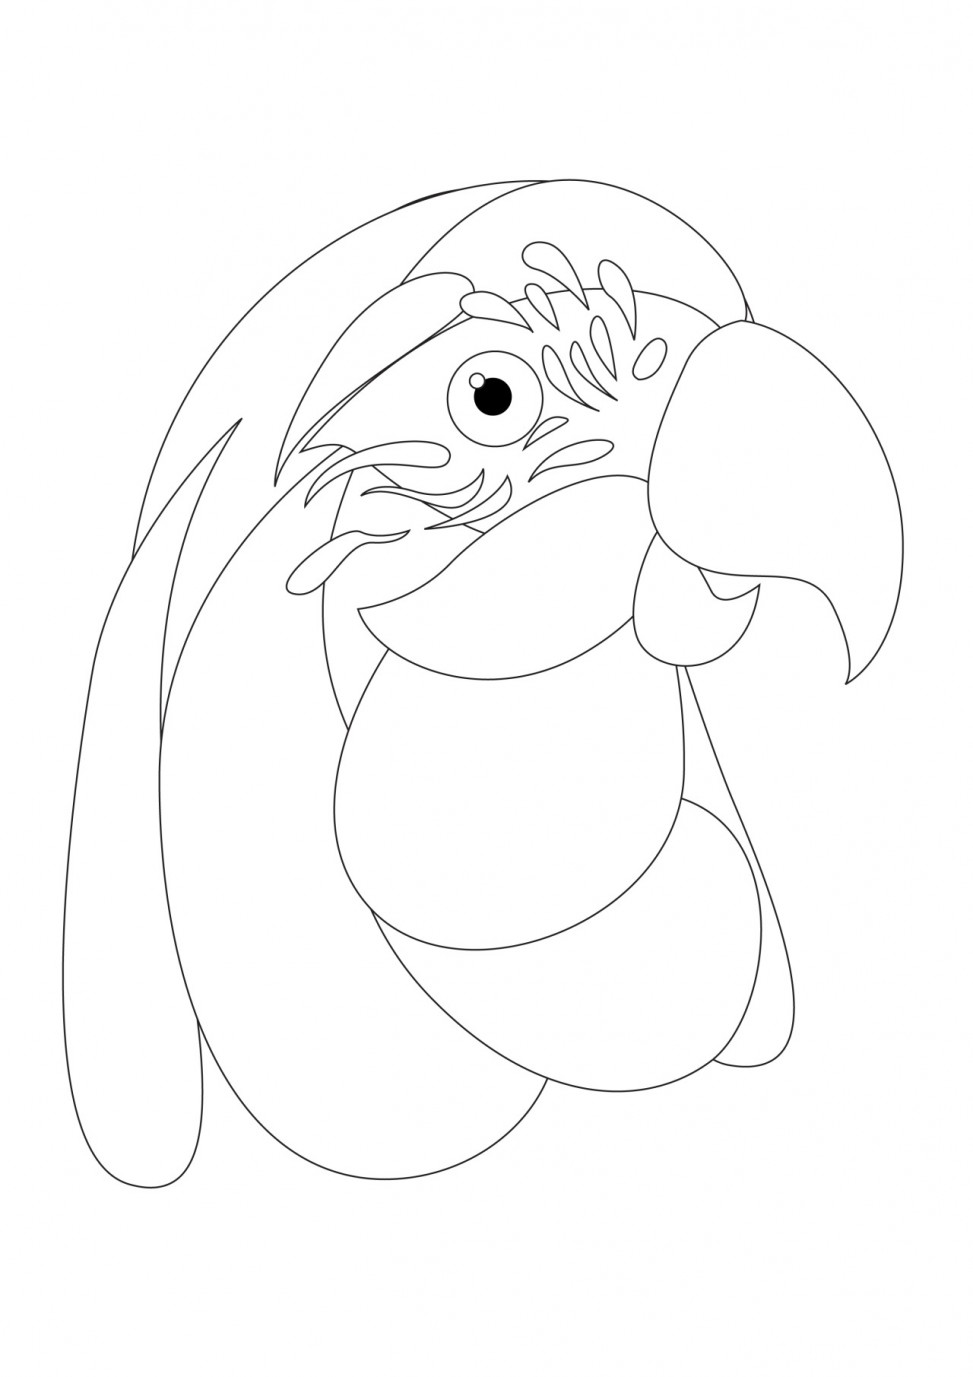 MACAW colouring sheet